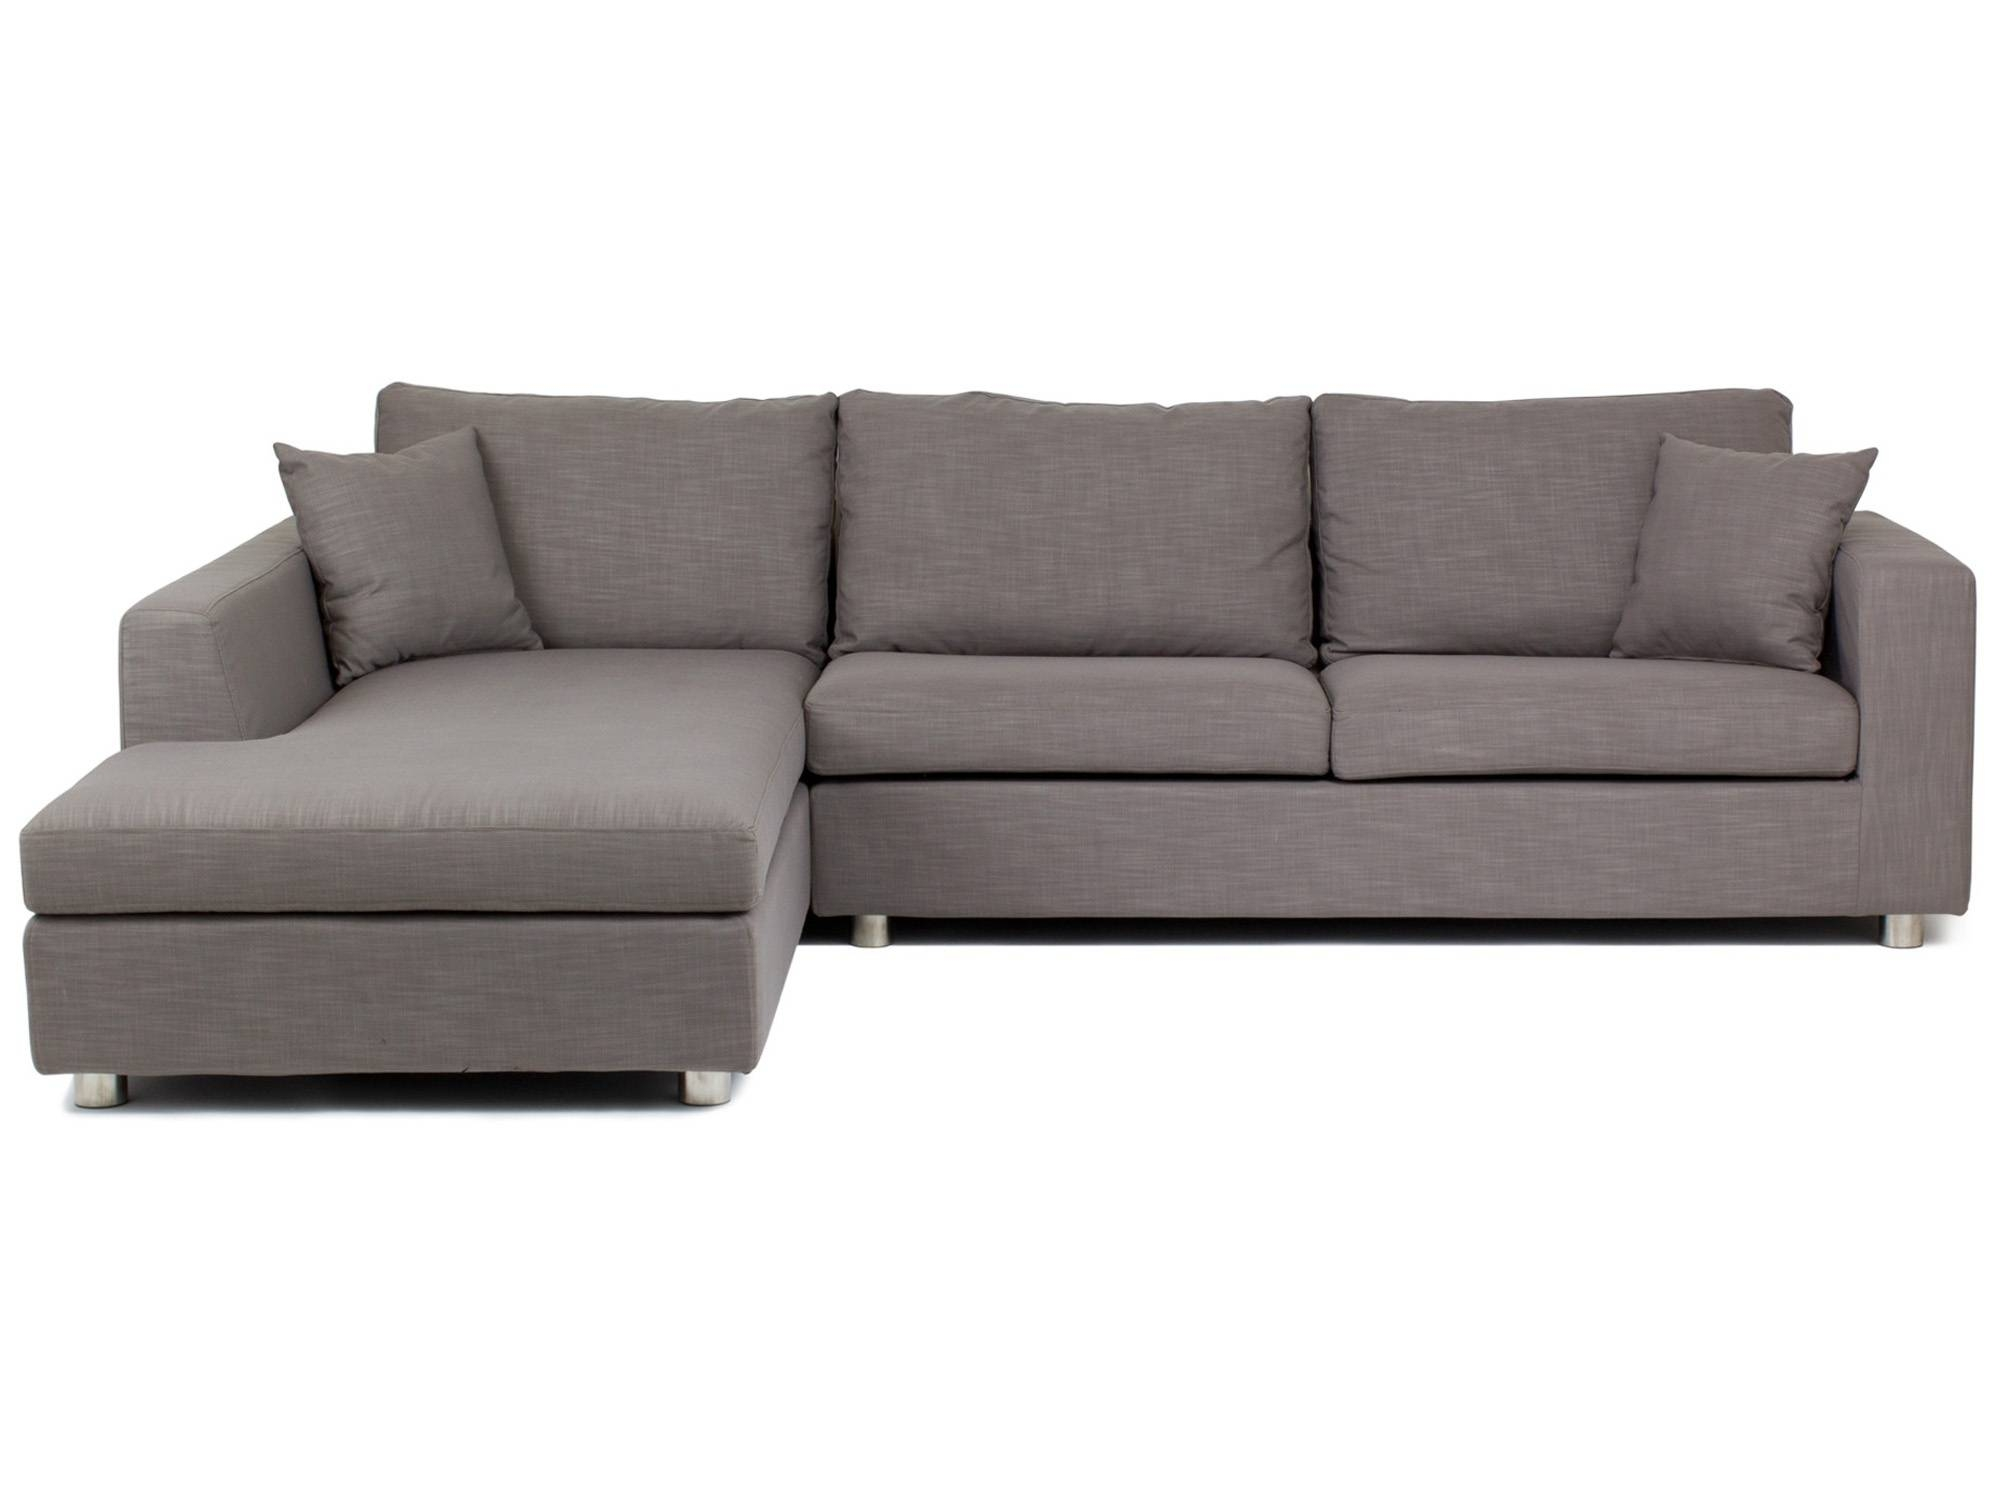 Mondo Storage - Corner Sofa Bed | Loungelovers intended for Sofa Beds With Storage Chaise (Image 11 of 15)